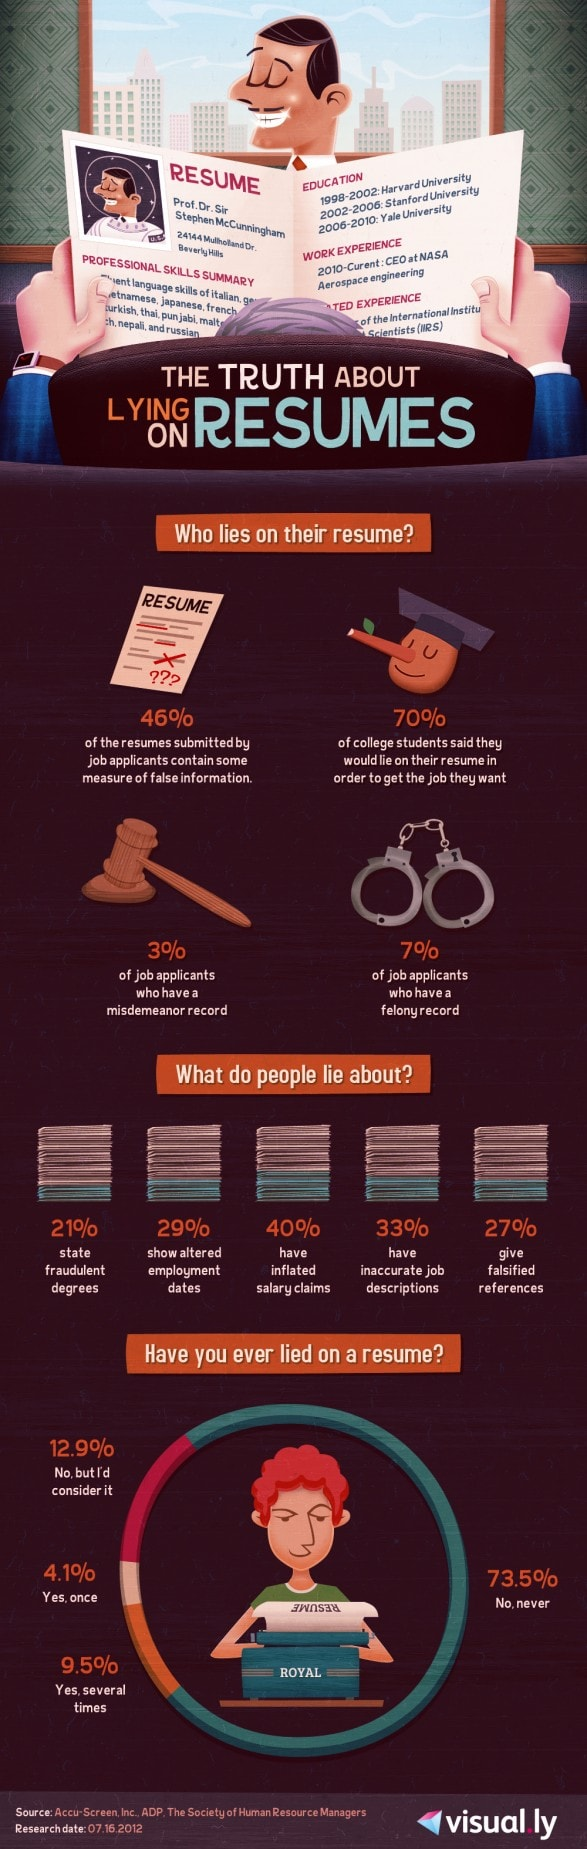 The Truth About Lying On Resumes (Infographic)